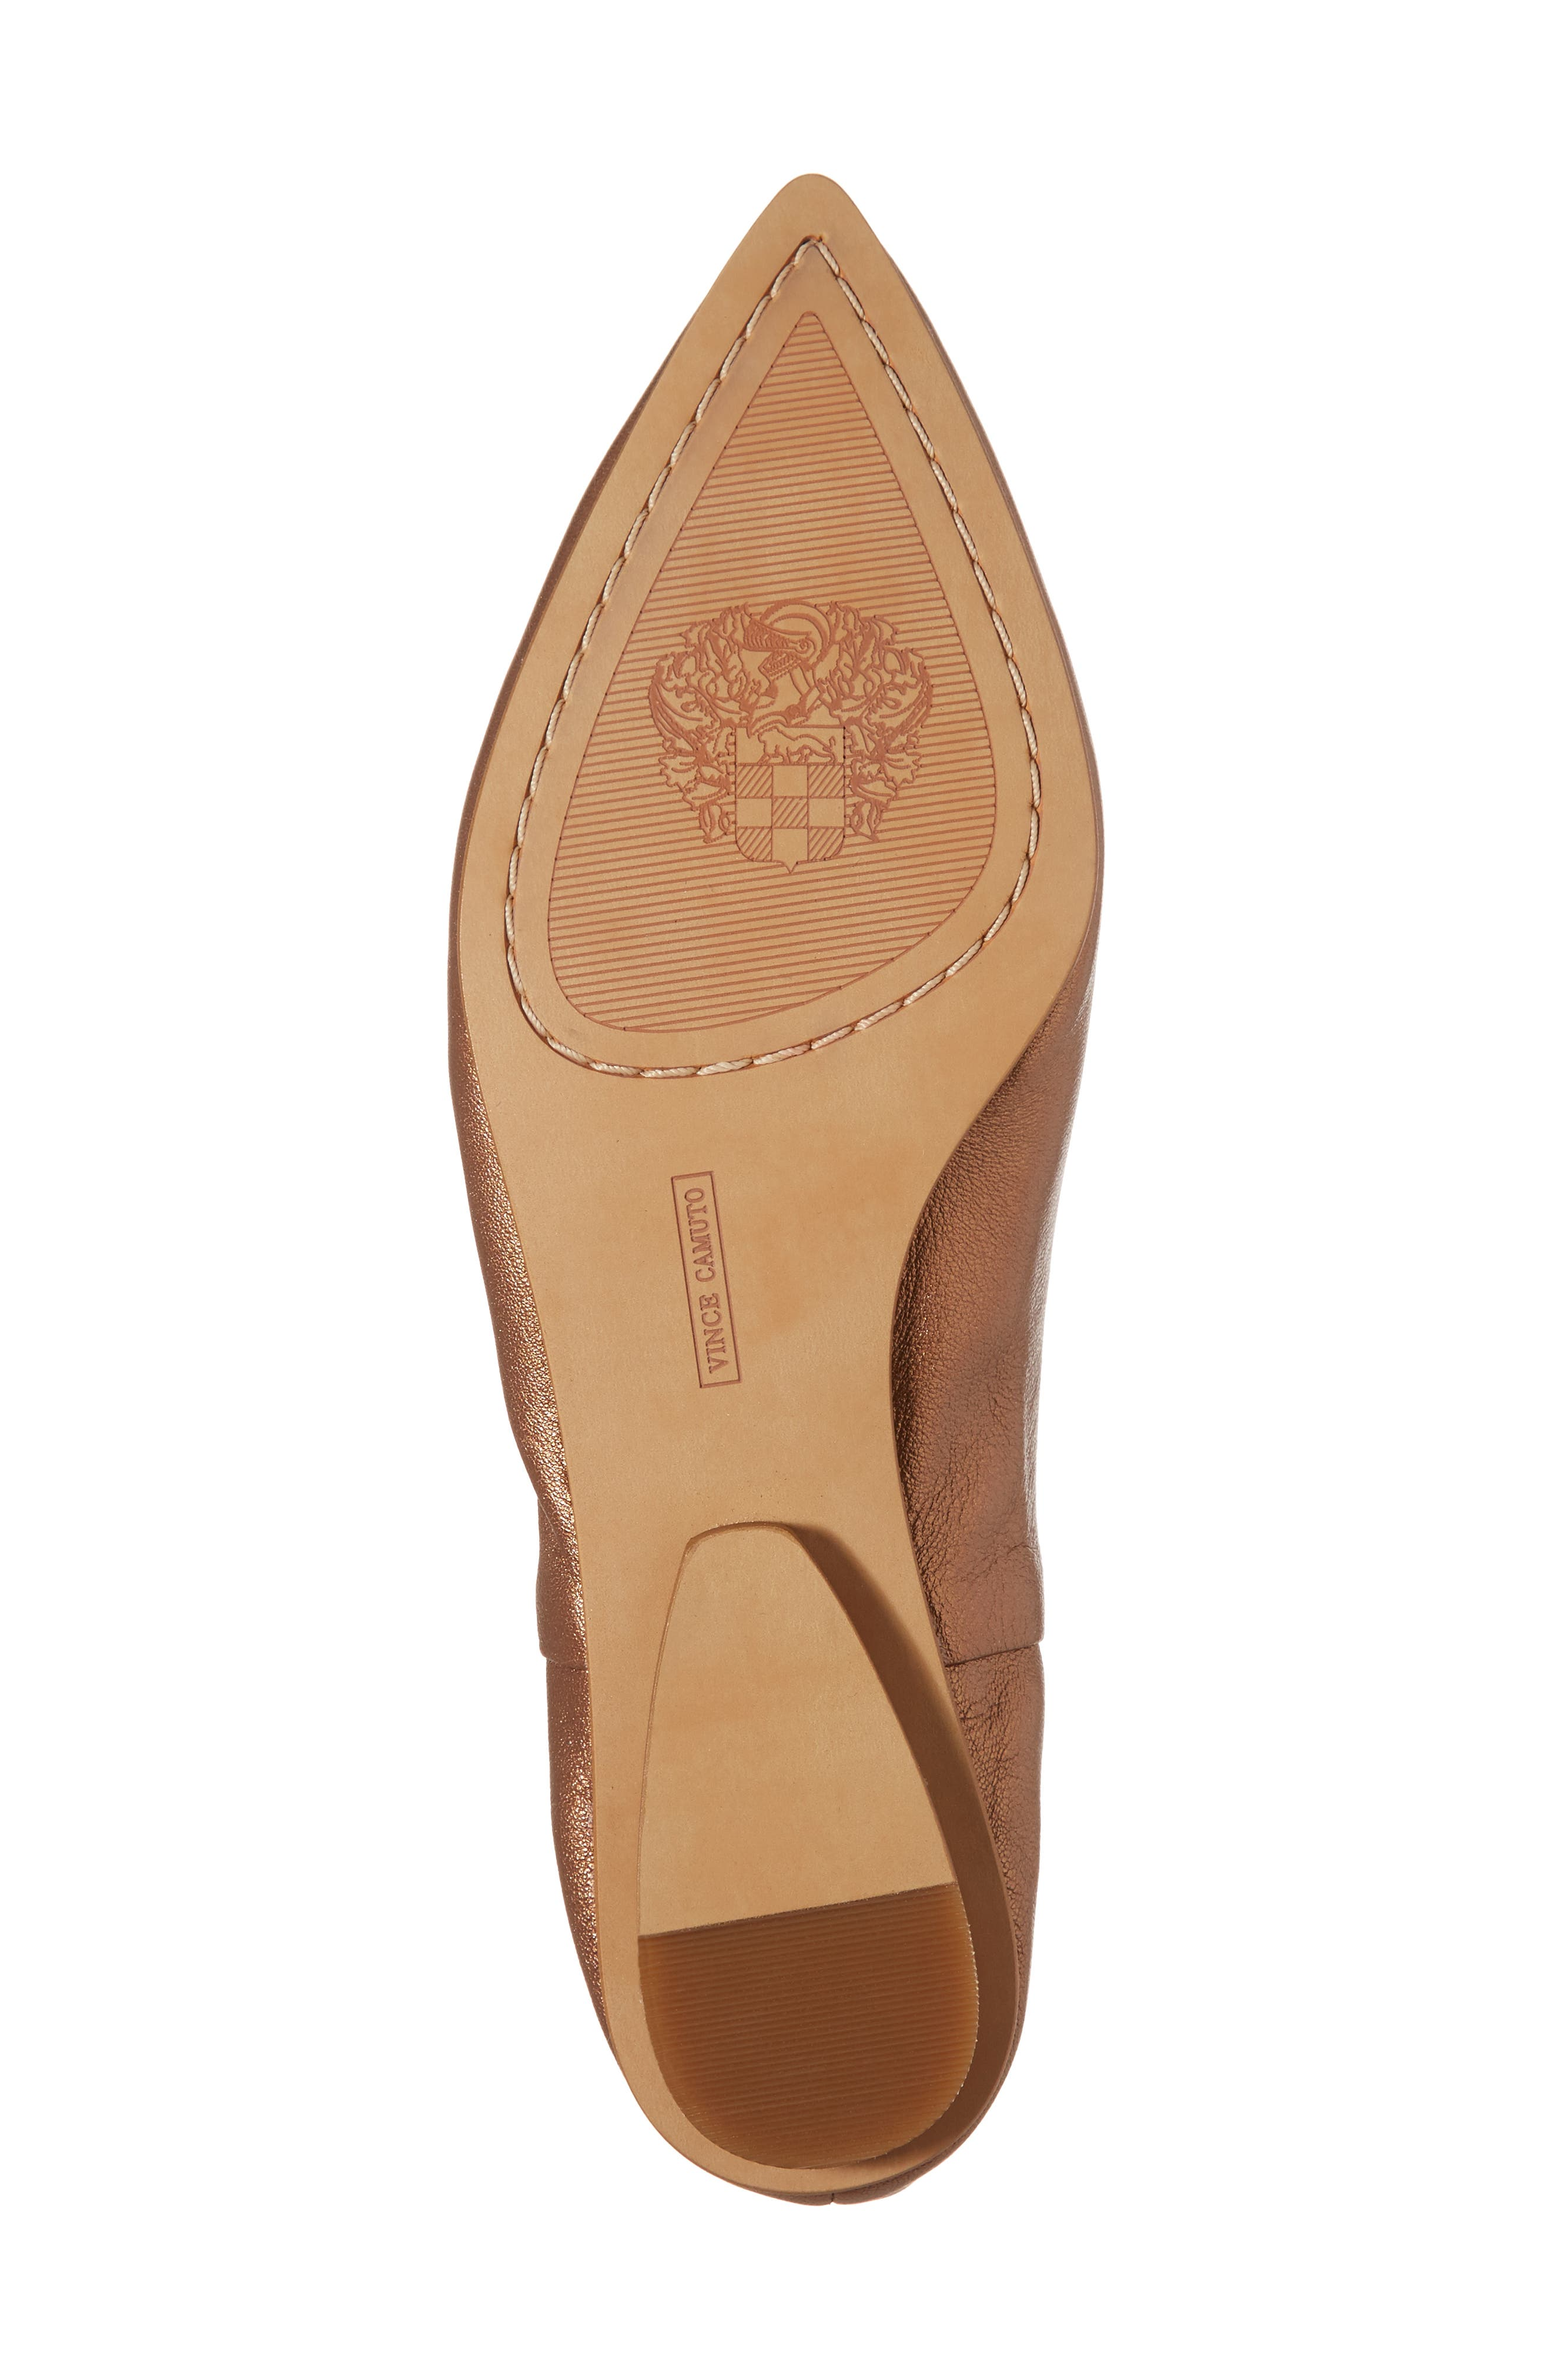 Stanta Pointy Toe Flat,                             Alternate thumbnail 6, color,                             Penny Leather